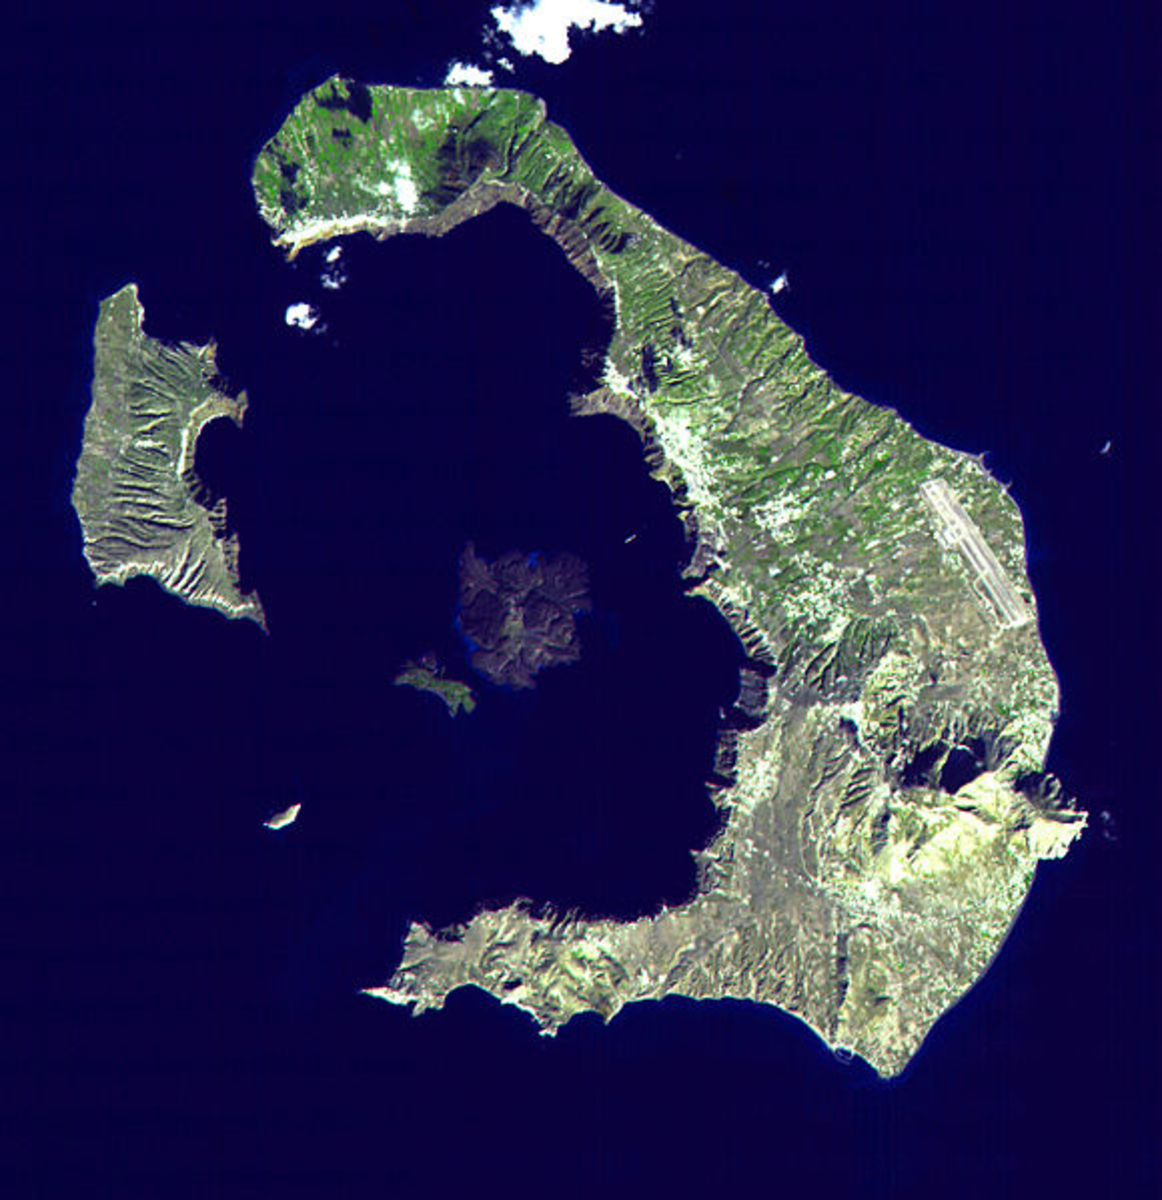 Santorini's ring of islands, you can clearly see the shape of the volcano